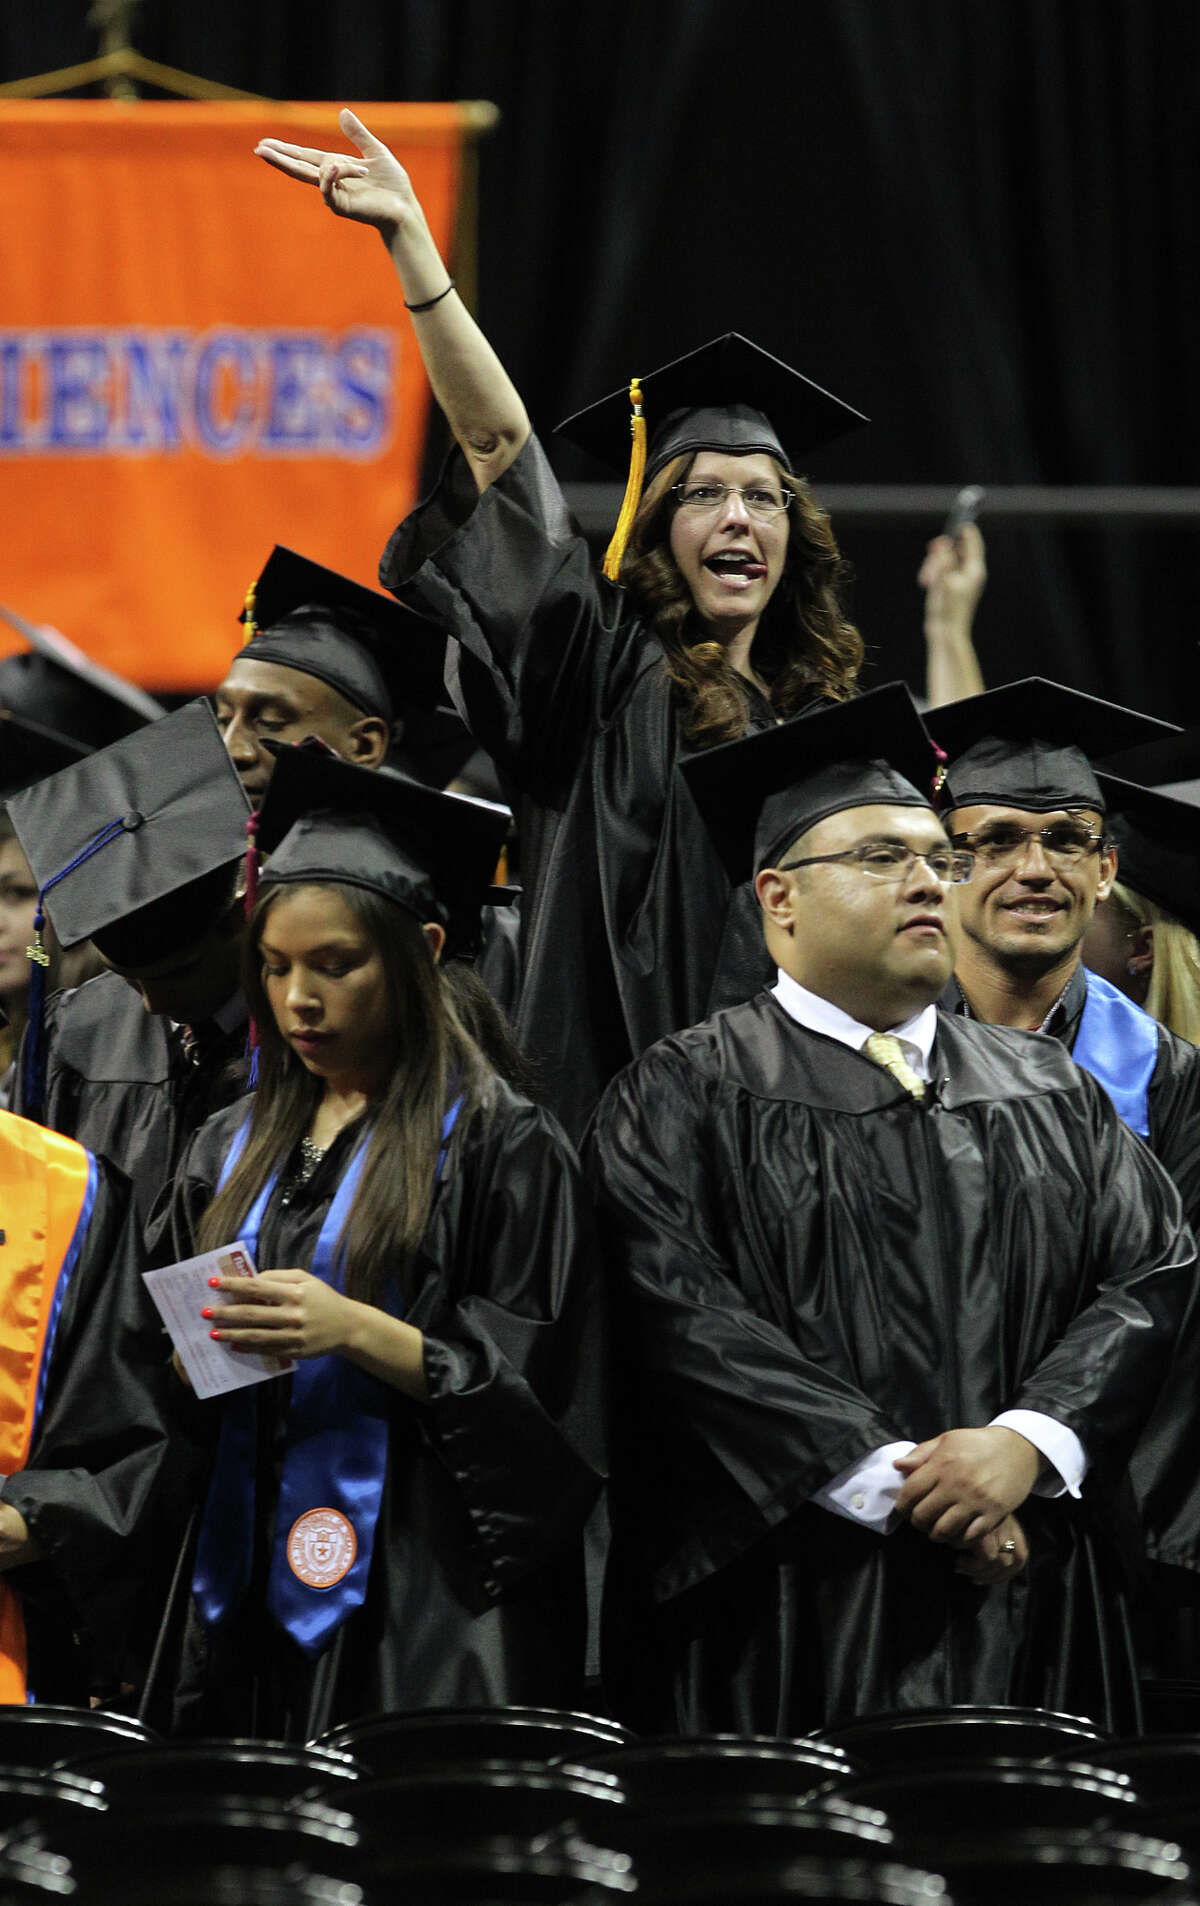 A student gets up high to catch the attention of family and friends during the first of two University of Texas at San Antonio graduation ceremonies at the Alamodome, Monday, May 13, 2013.